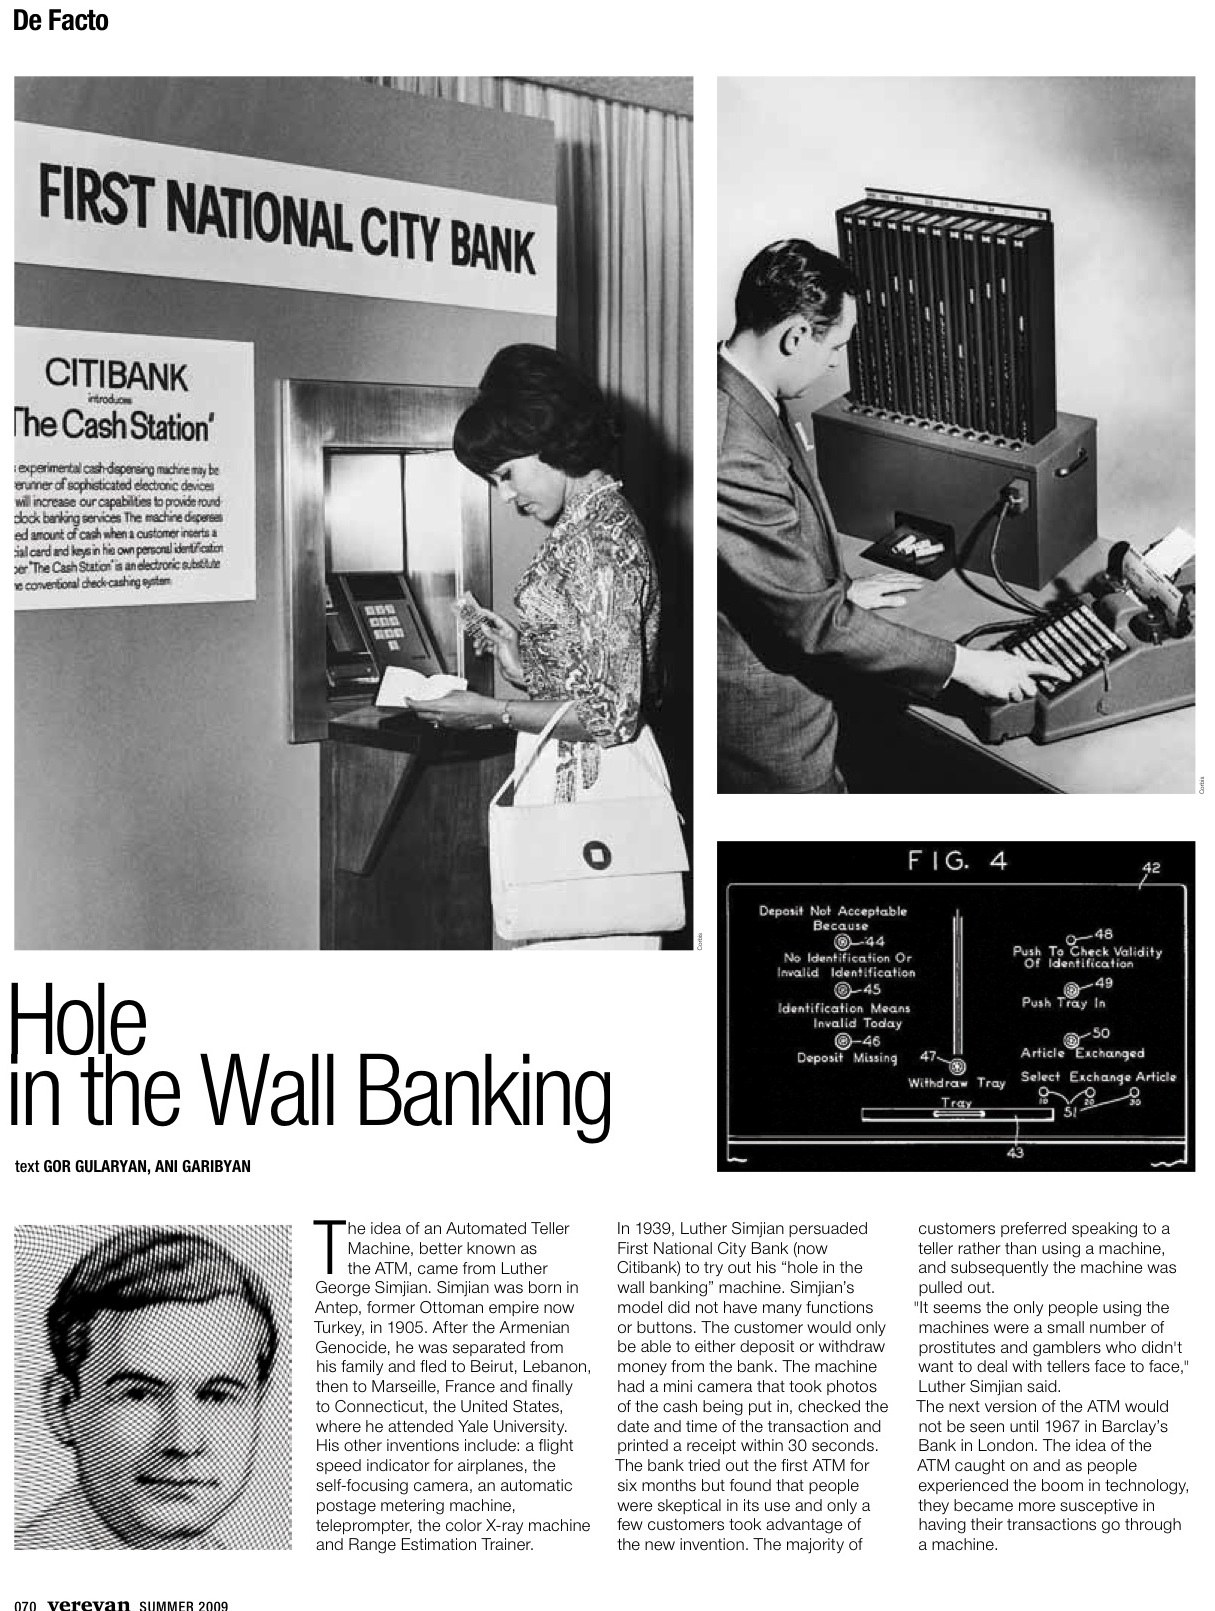 Hole in the Wall Banking   The creation of the ATM